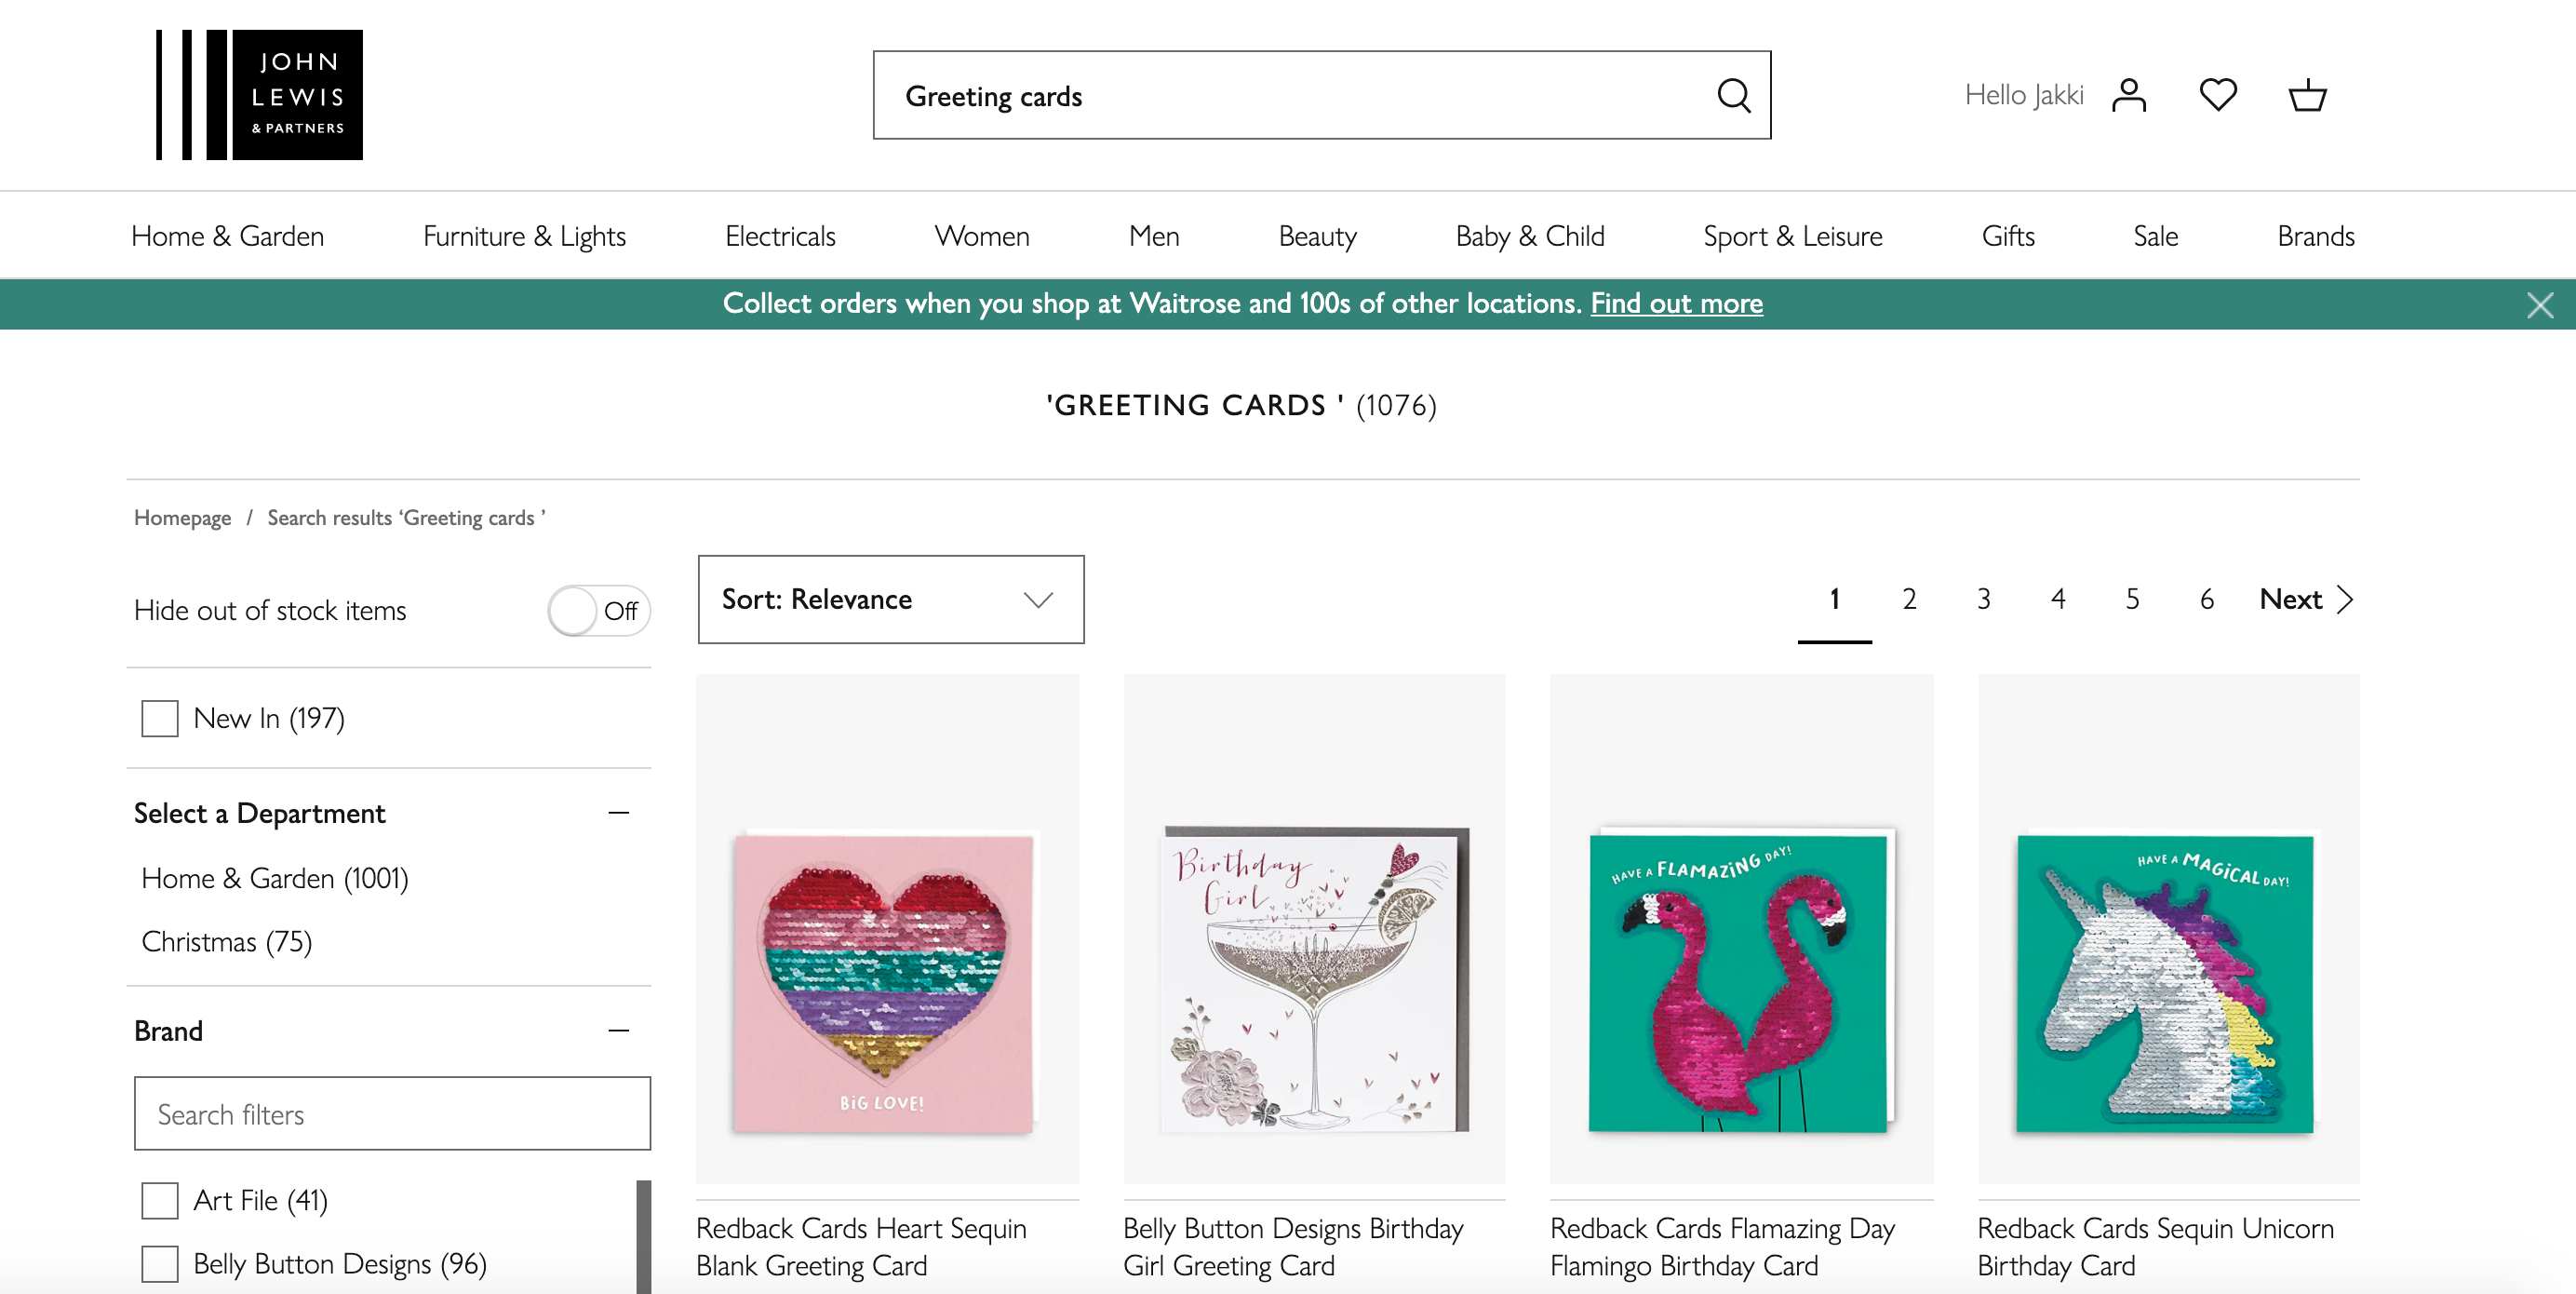 Above: John Lewis' online greeting card sales increased 370% year on year in 2020.